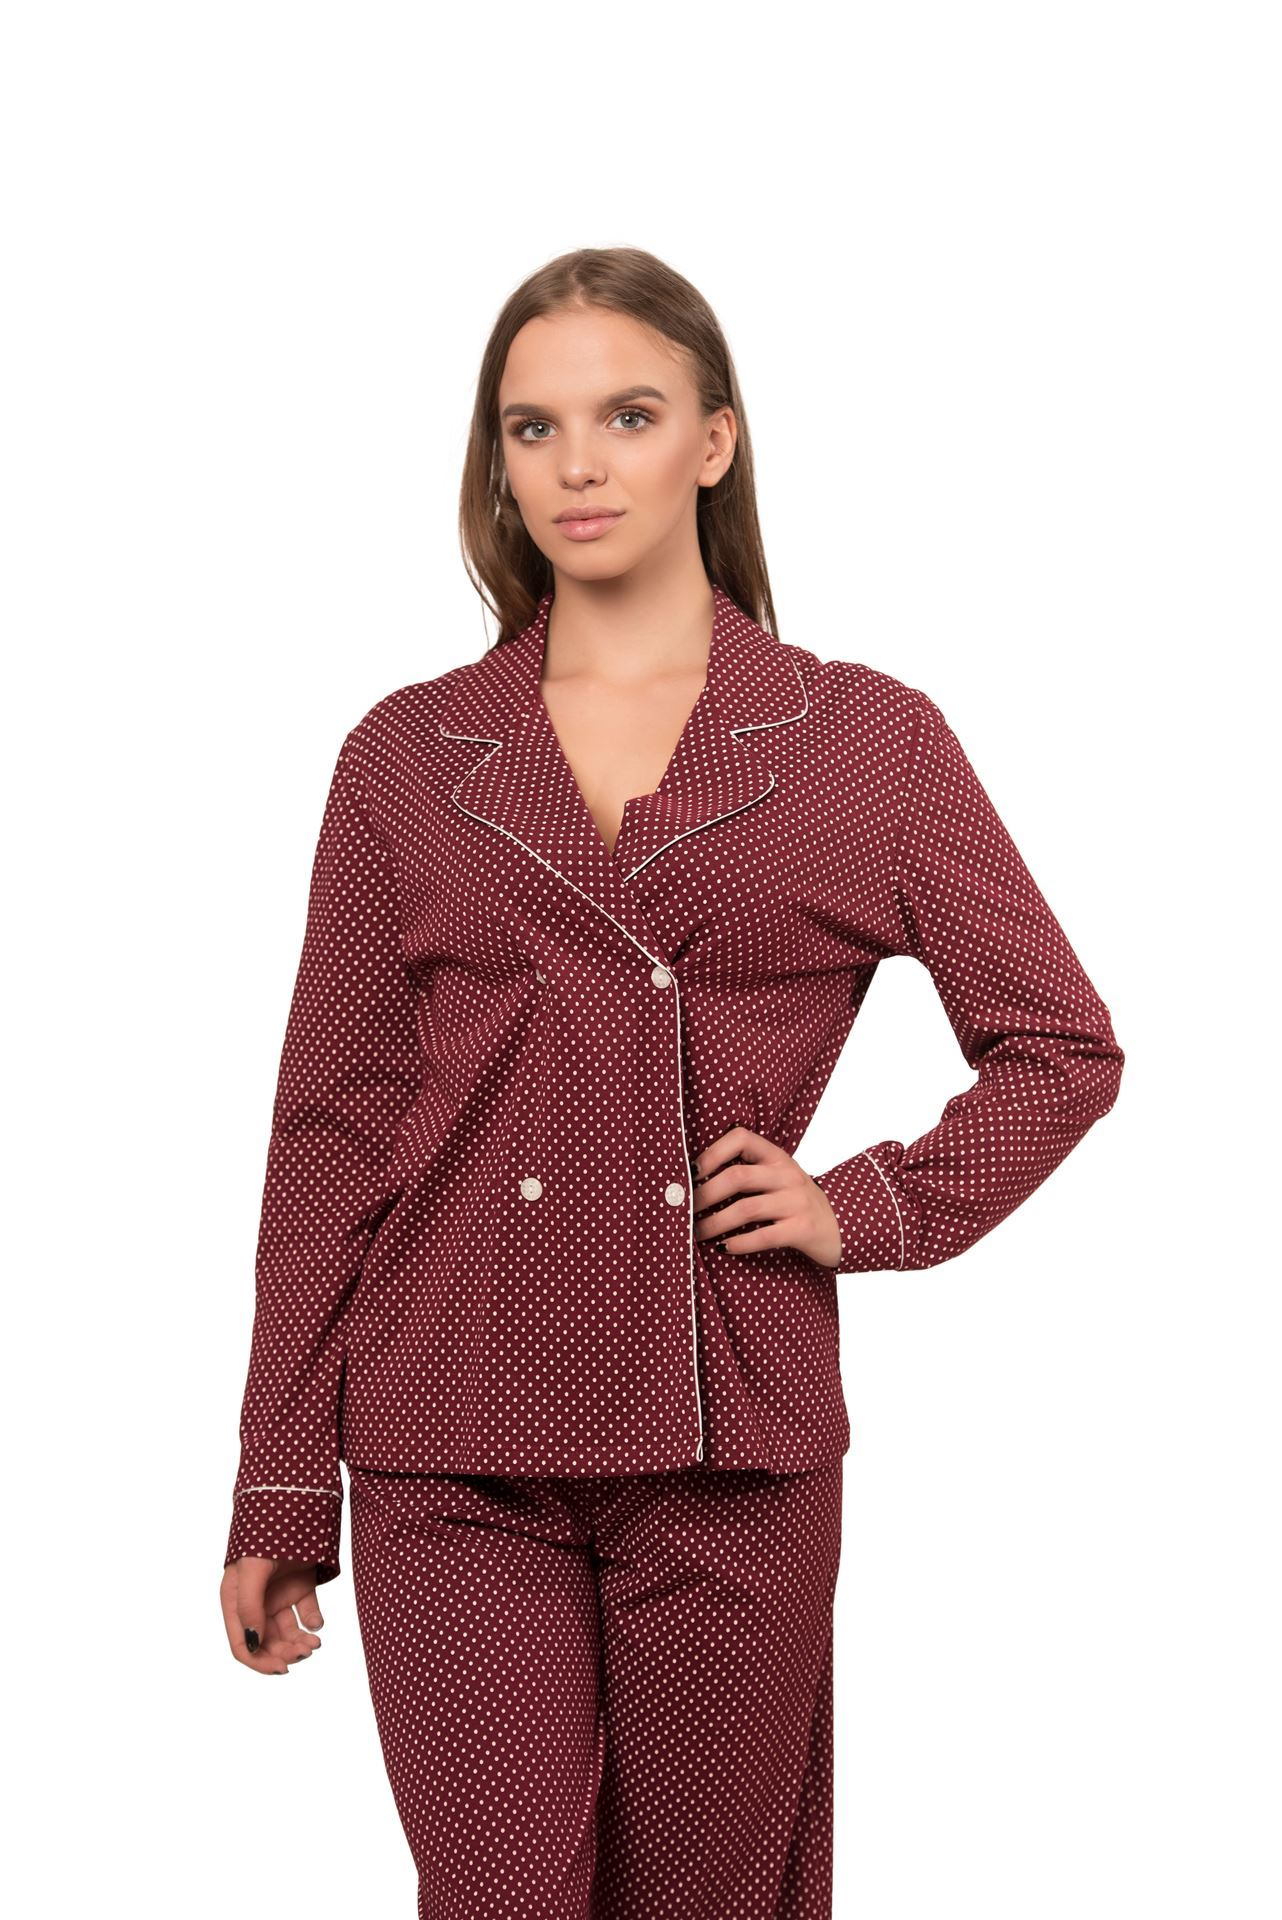 Picture of Women's pajamas with buckles - Outlet